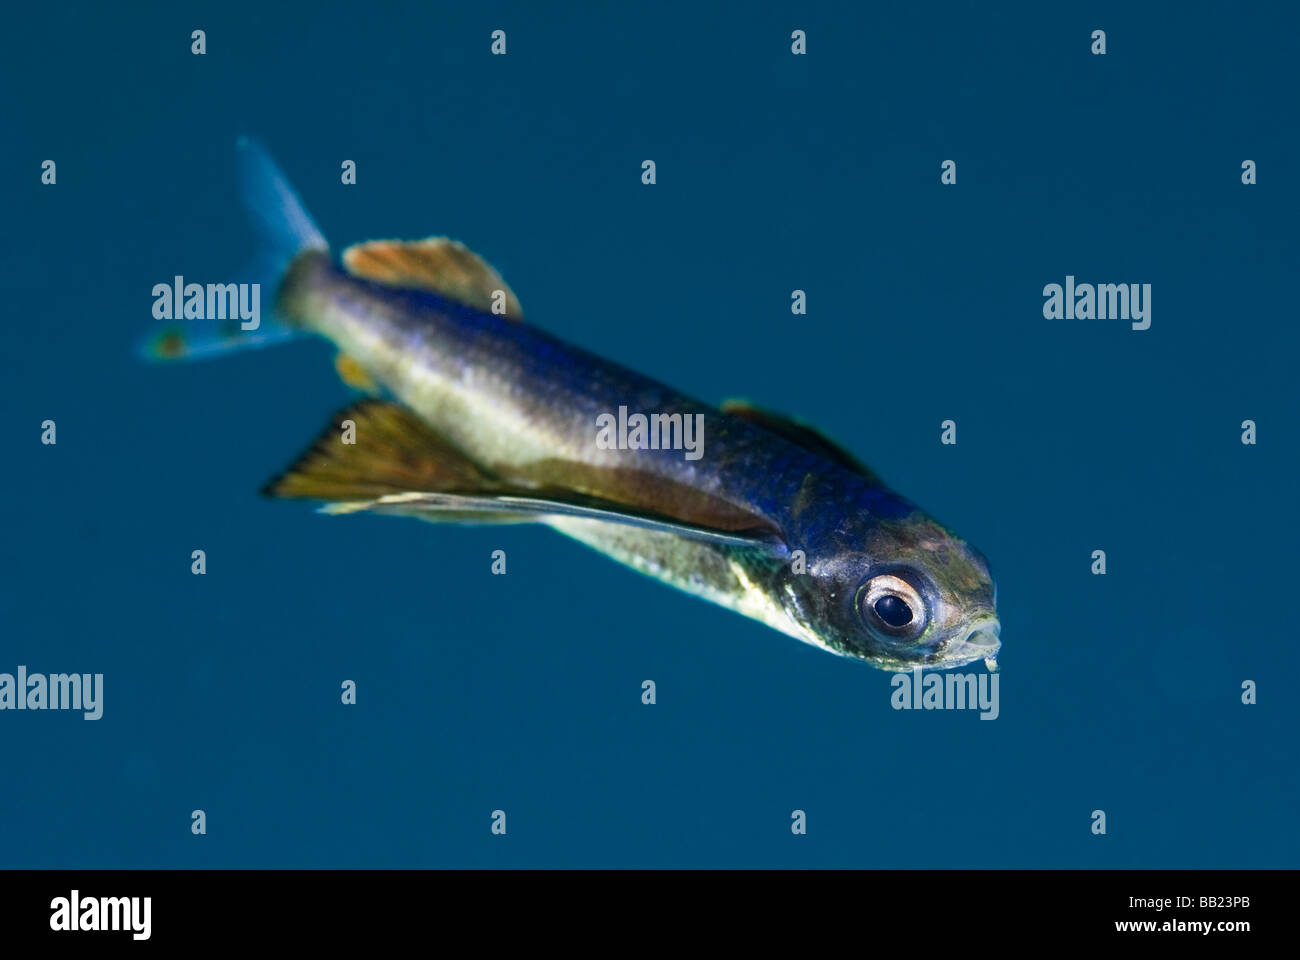 Papua New Guinea, New Britain Island. Close-up of a juvenile flying fish. Stock Photo